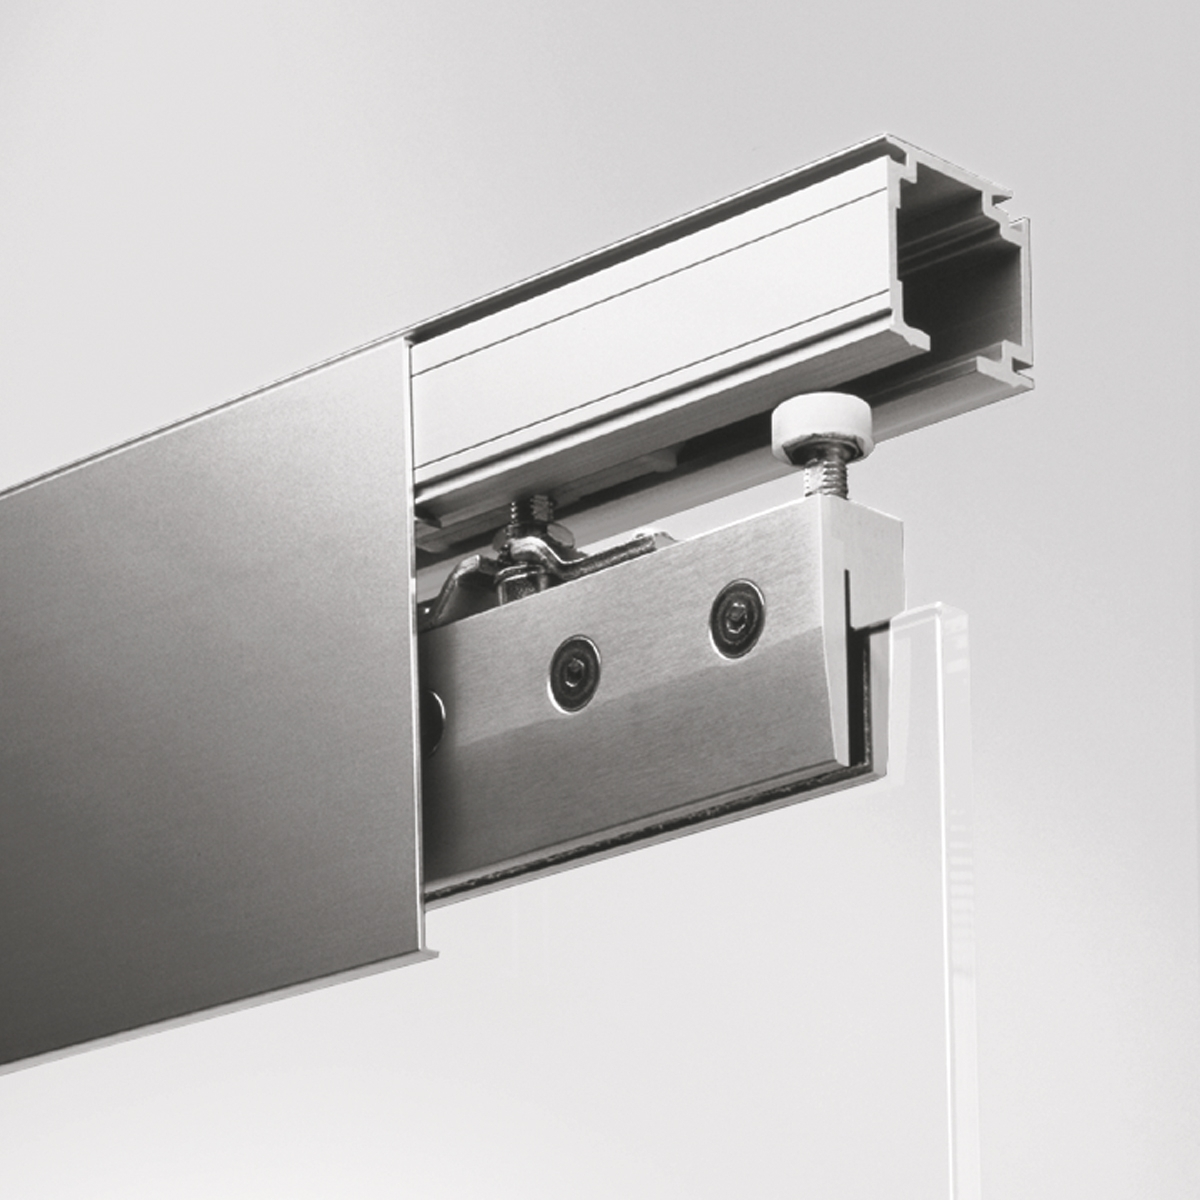 Dorma Sliding Door Handlesdorma rs 120120 syncro fittings for toughened glass room dividers